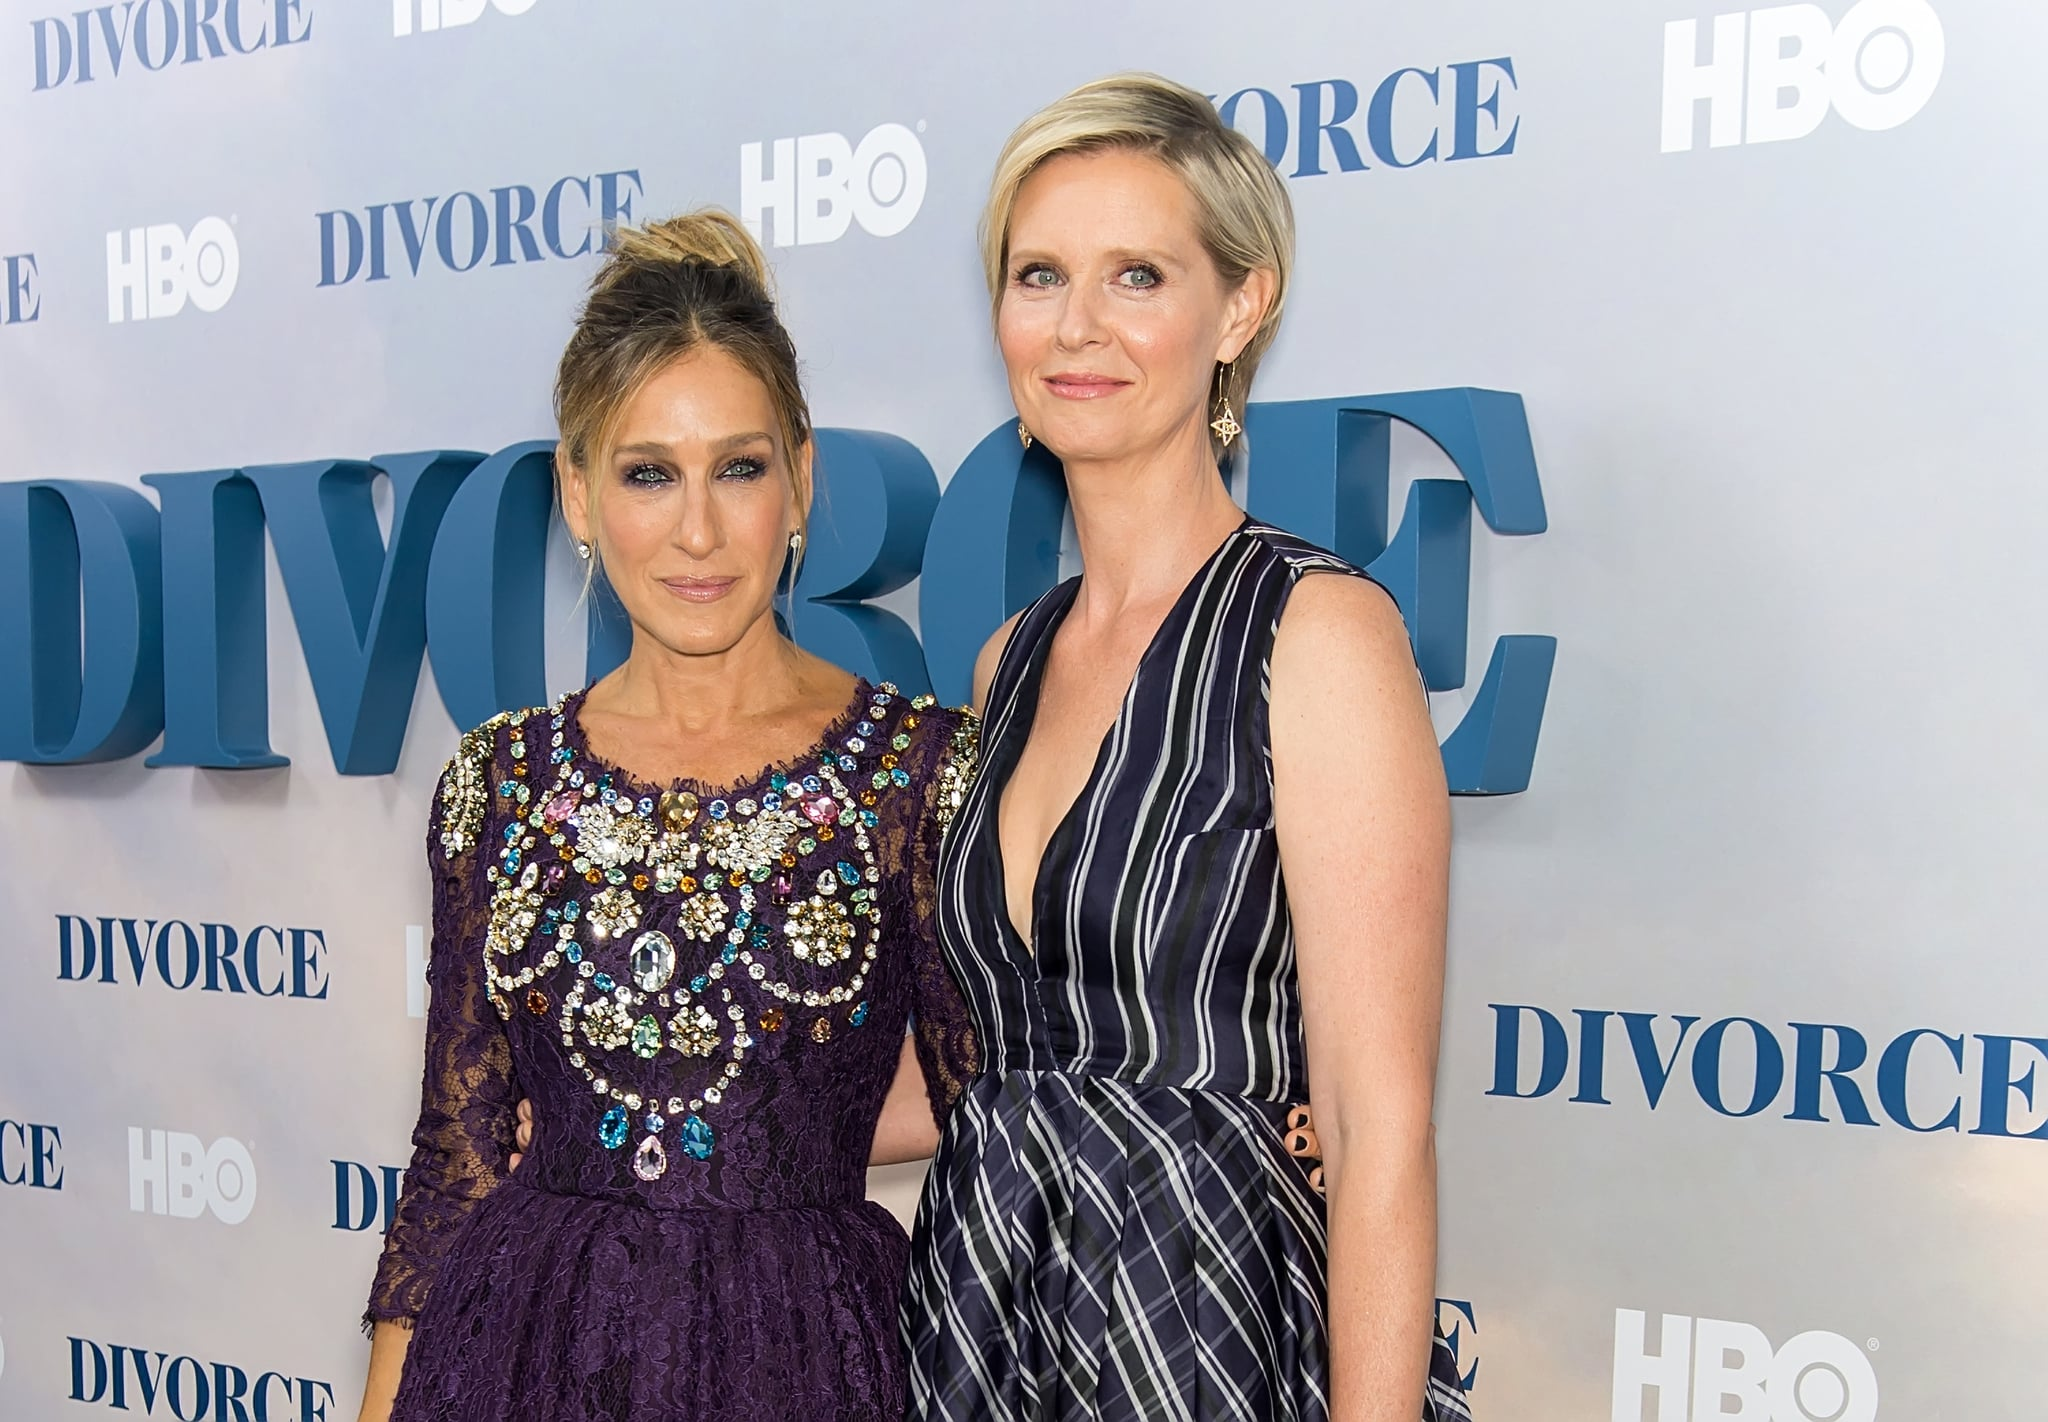 NEW YORK, NY - OCTOBER 04:  Actors Sarah Jessica Parker and Cynthia Nixon attend the 'Divorce' New York Premiere at SVA theatre on October 4, 2016 in New York City.  (Photo by Gilbert Carrasquillo/FilmMagic)